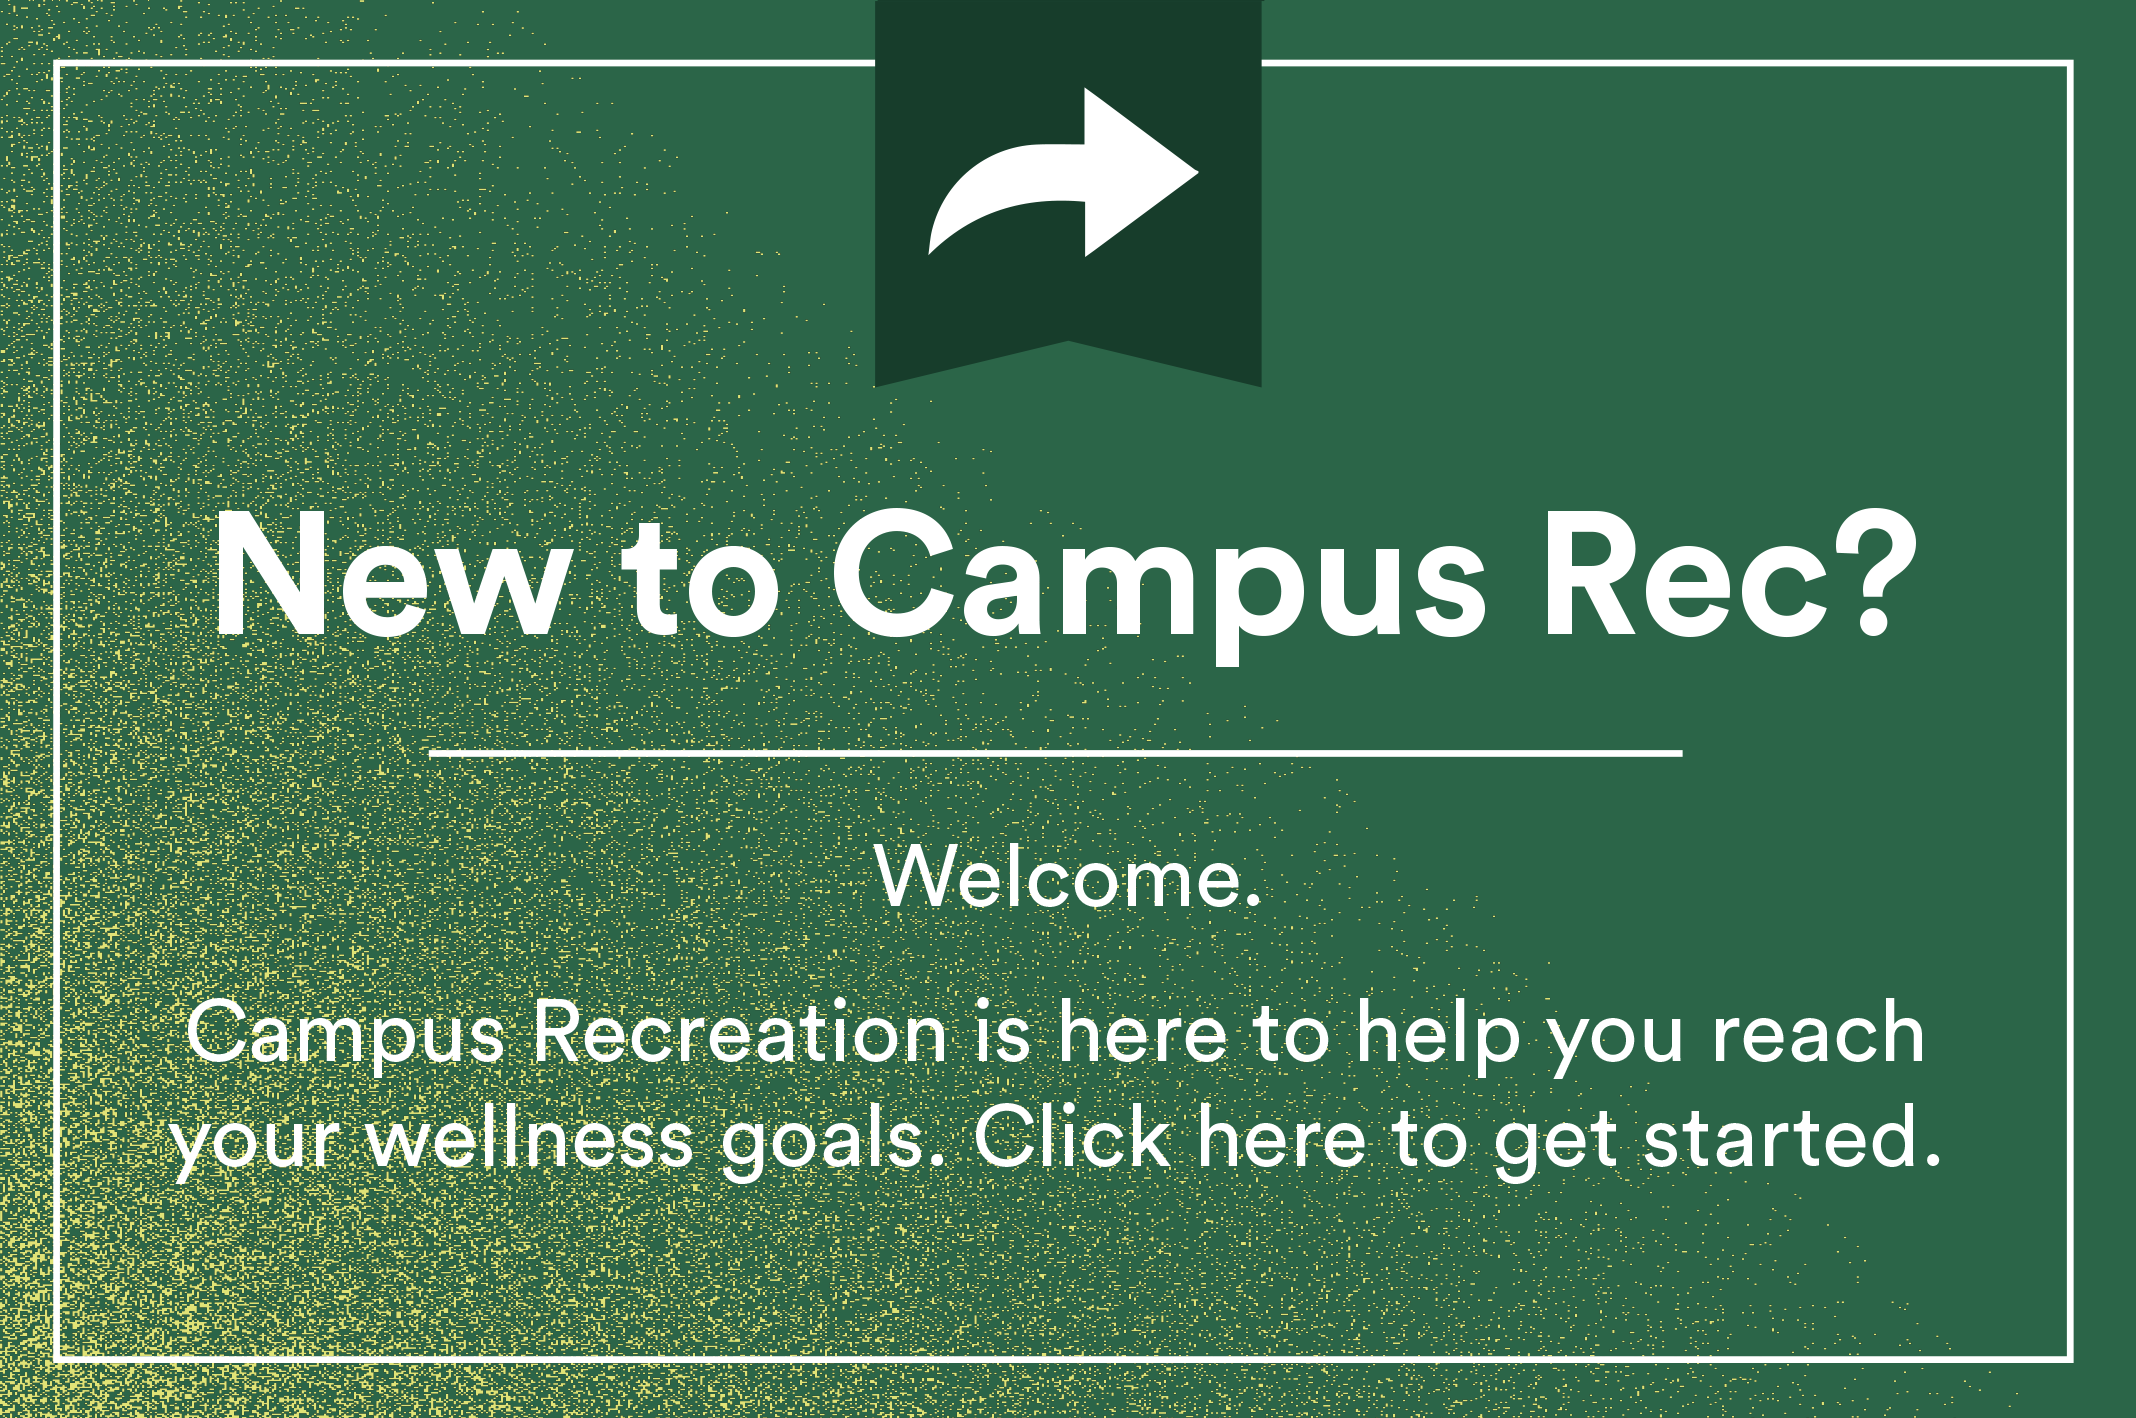 NEW TO CAMPUS REC?